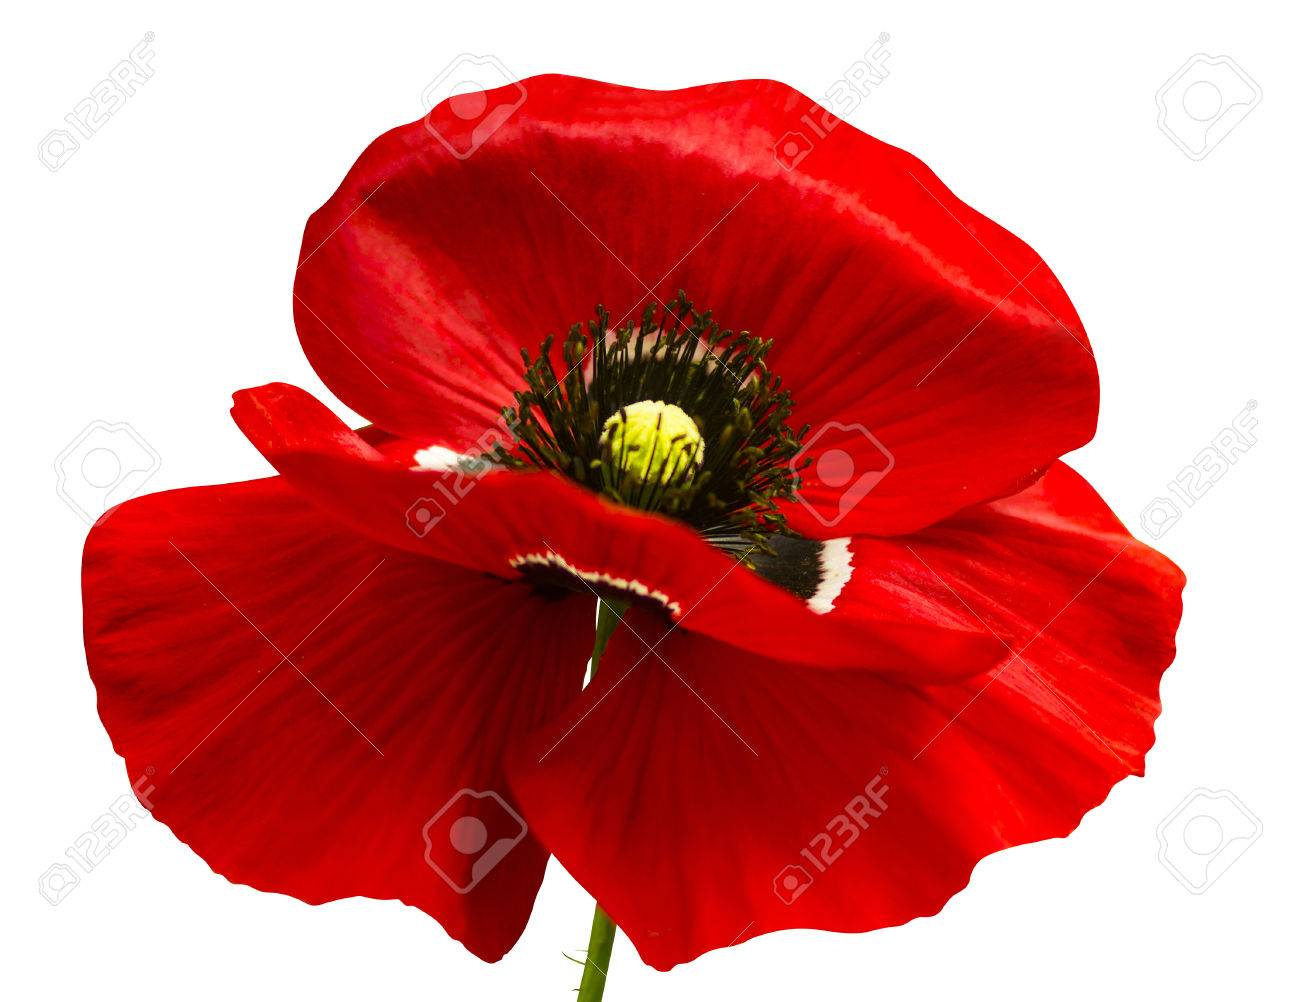 Coquelicot Coquelicot Rouge Isole Sur Blanc Pavot Background Red